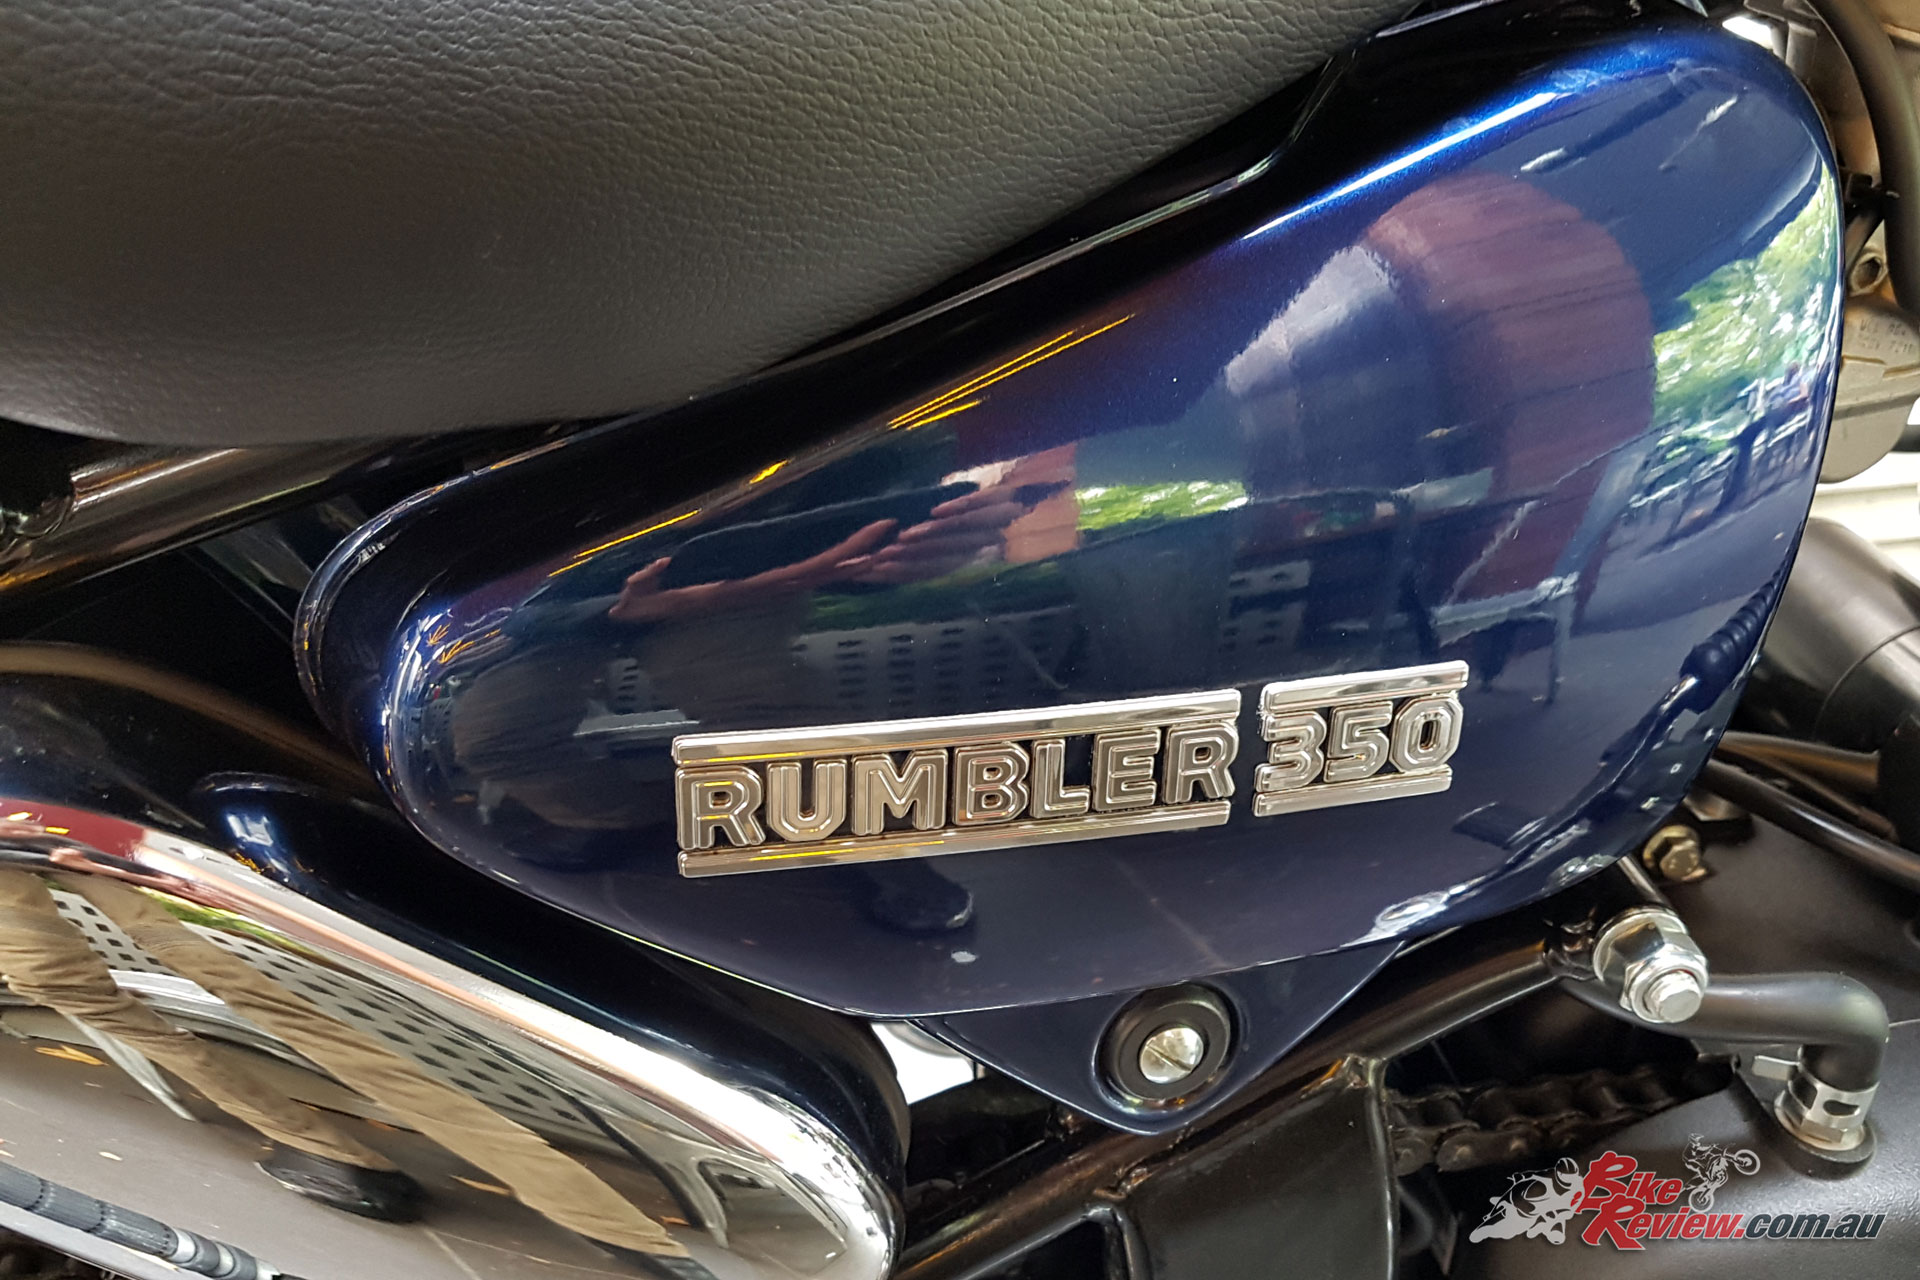 The Rumbler 350 stands out with high quality paint and plenty of chrome